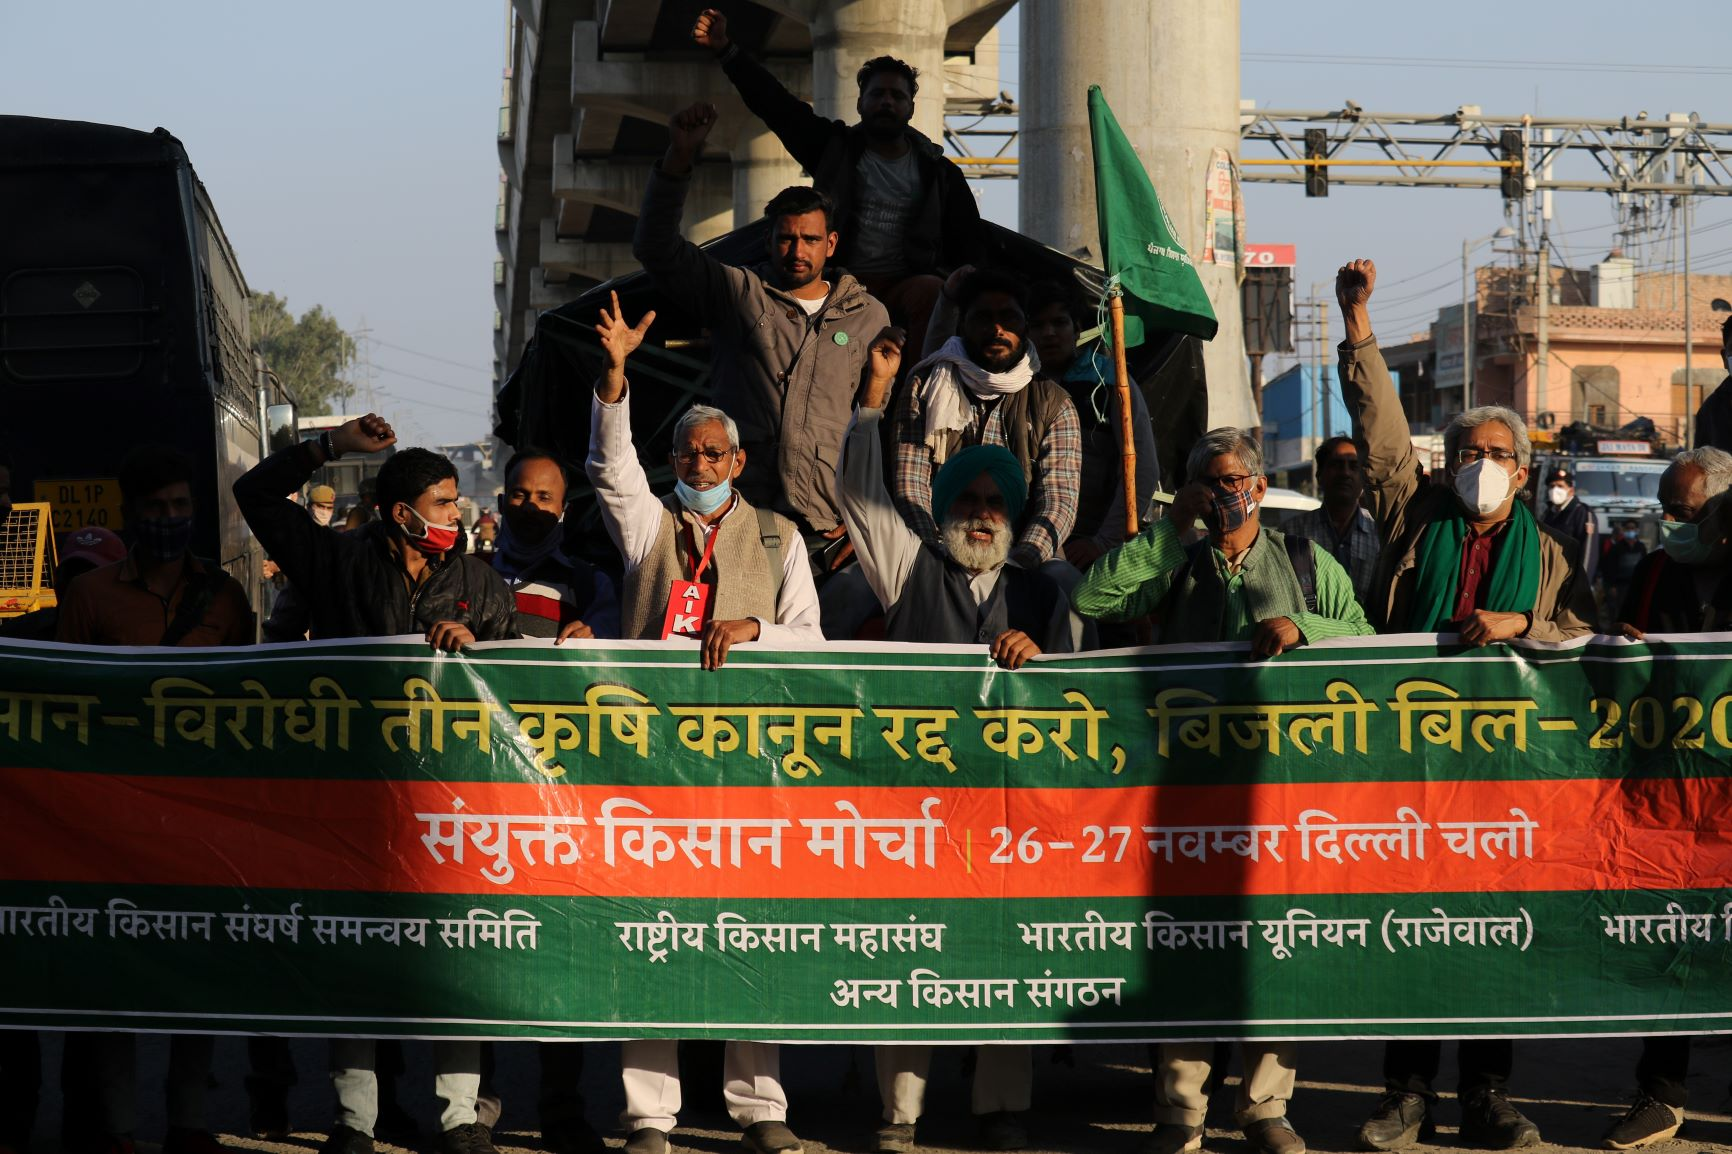 Indian diaspora supports farmers' protest in India